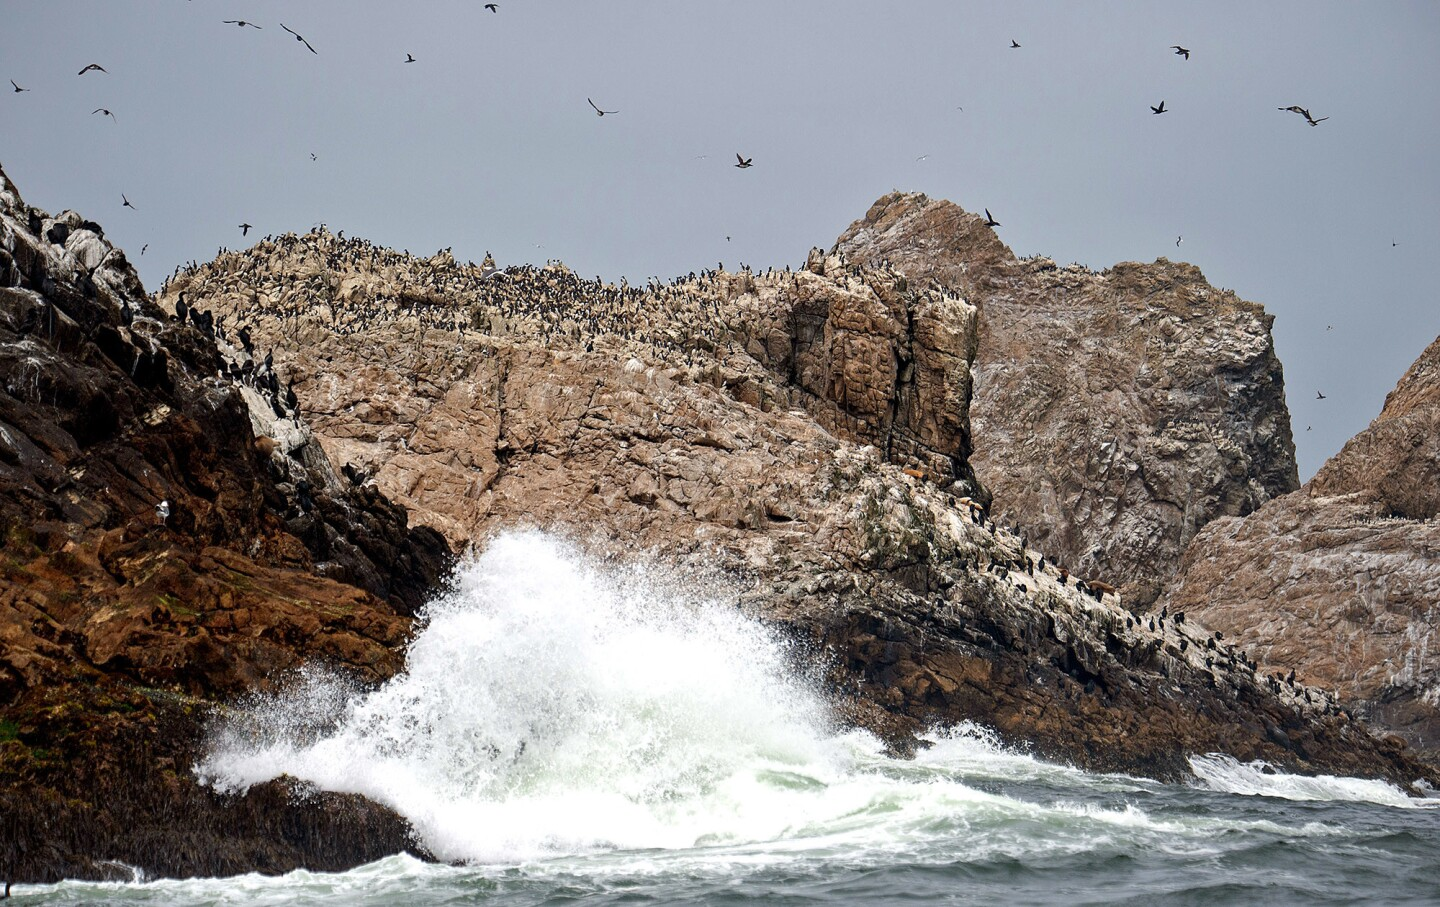 Wildlife thrives on the Farallon Islands — for now